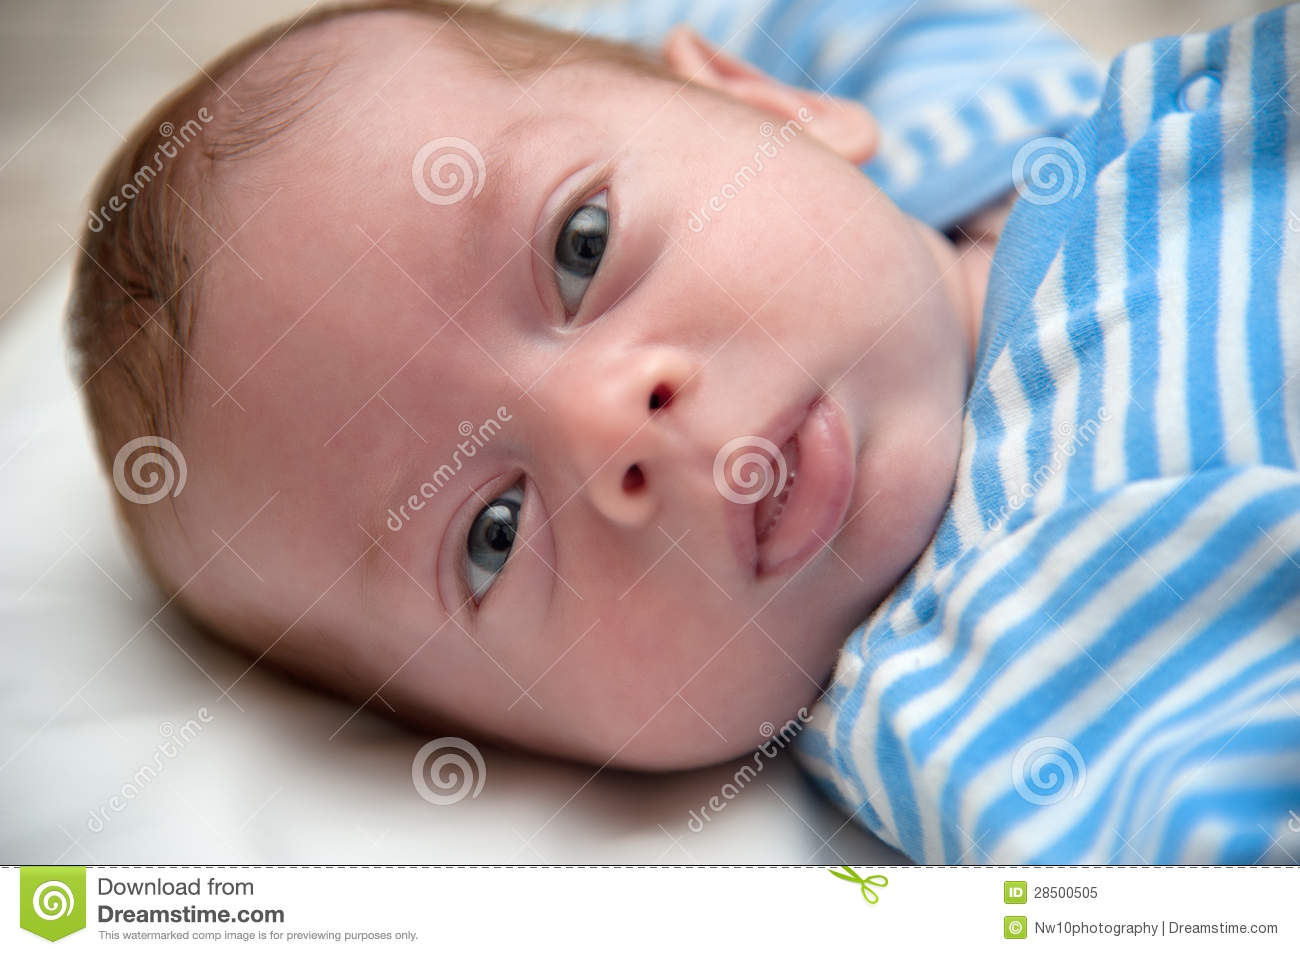 Baby Boy Lying Down Royalty Free Stock Photo - Image: 28500505